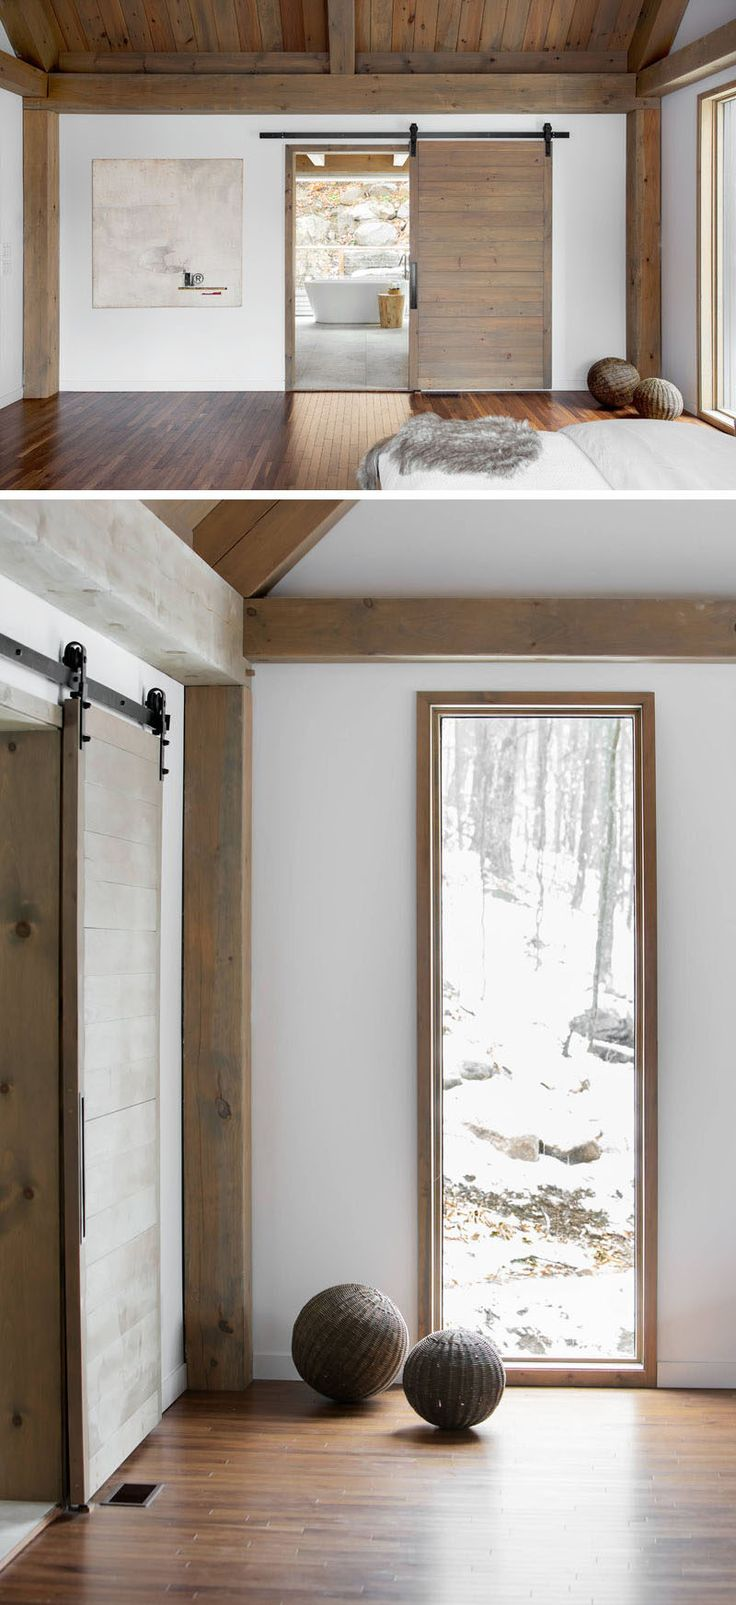 in keeping with the rustic yet modern feel of the bedroom a sliding barn door